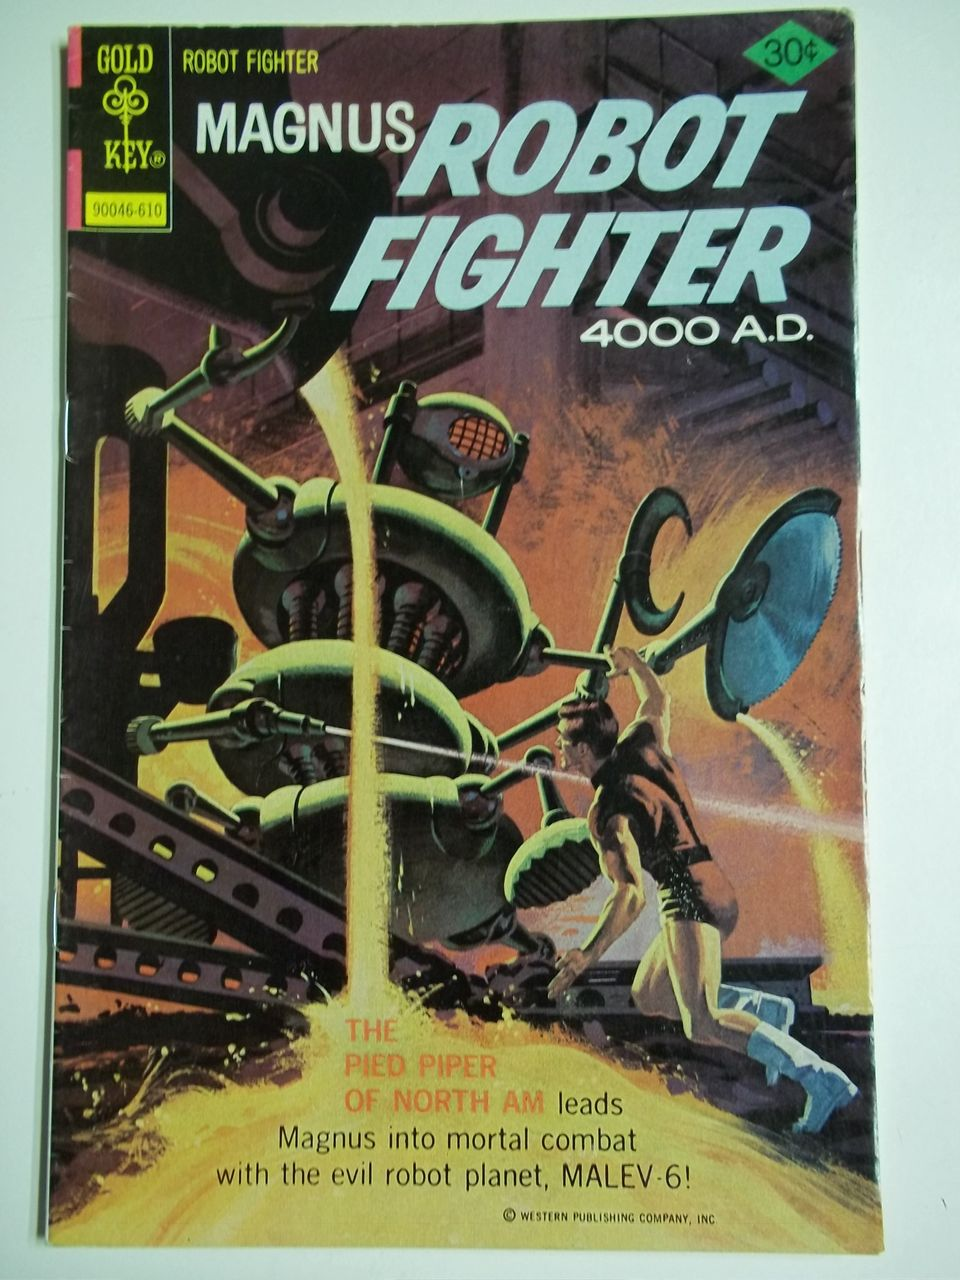 Gold Key Comics Magnus Robot Fighter No. 45, Oct. 1976